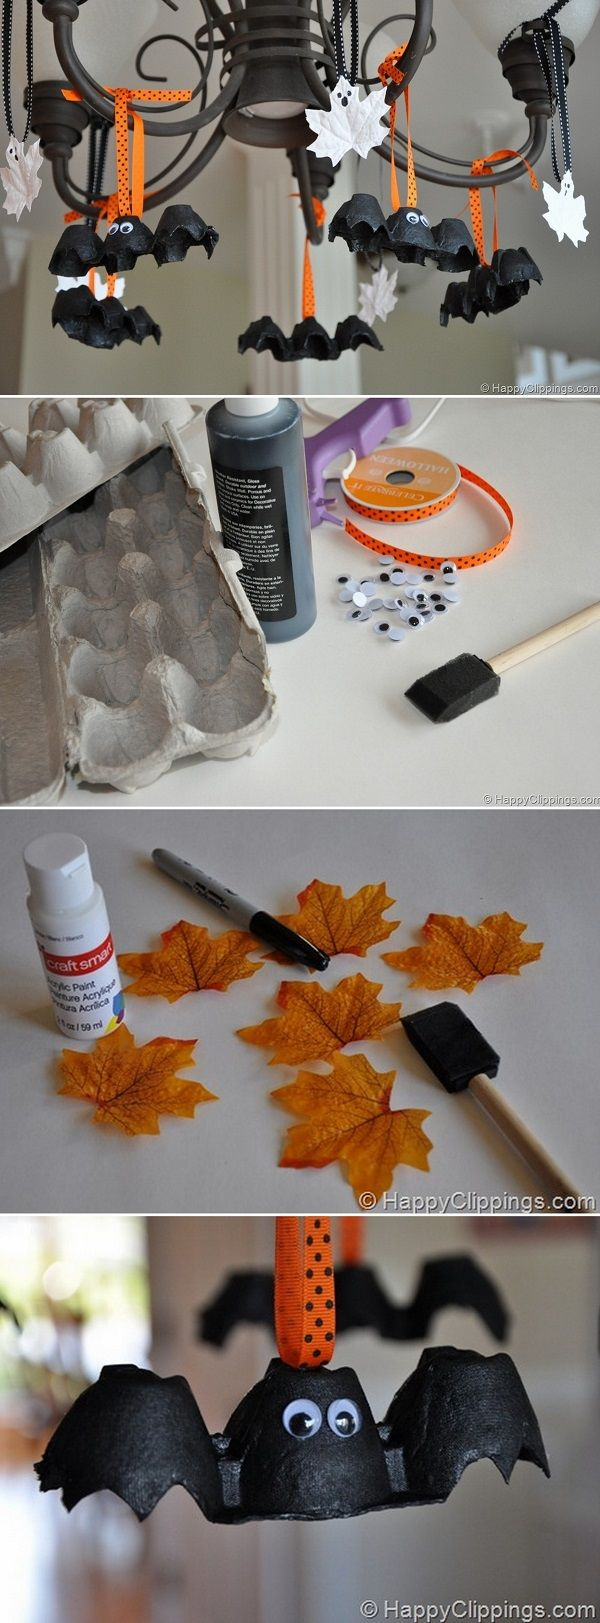 Check out the tutorial on how to make DIY egg cartoon bats and leaf ghosts for Halloween home decoration @istandarddesign